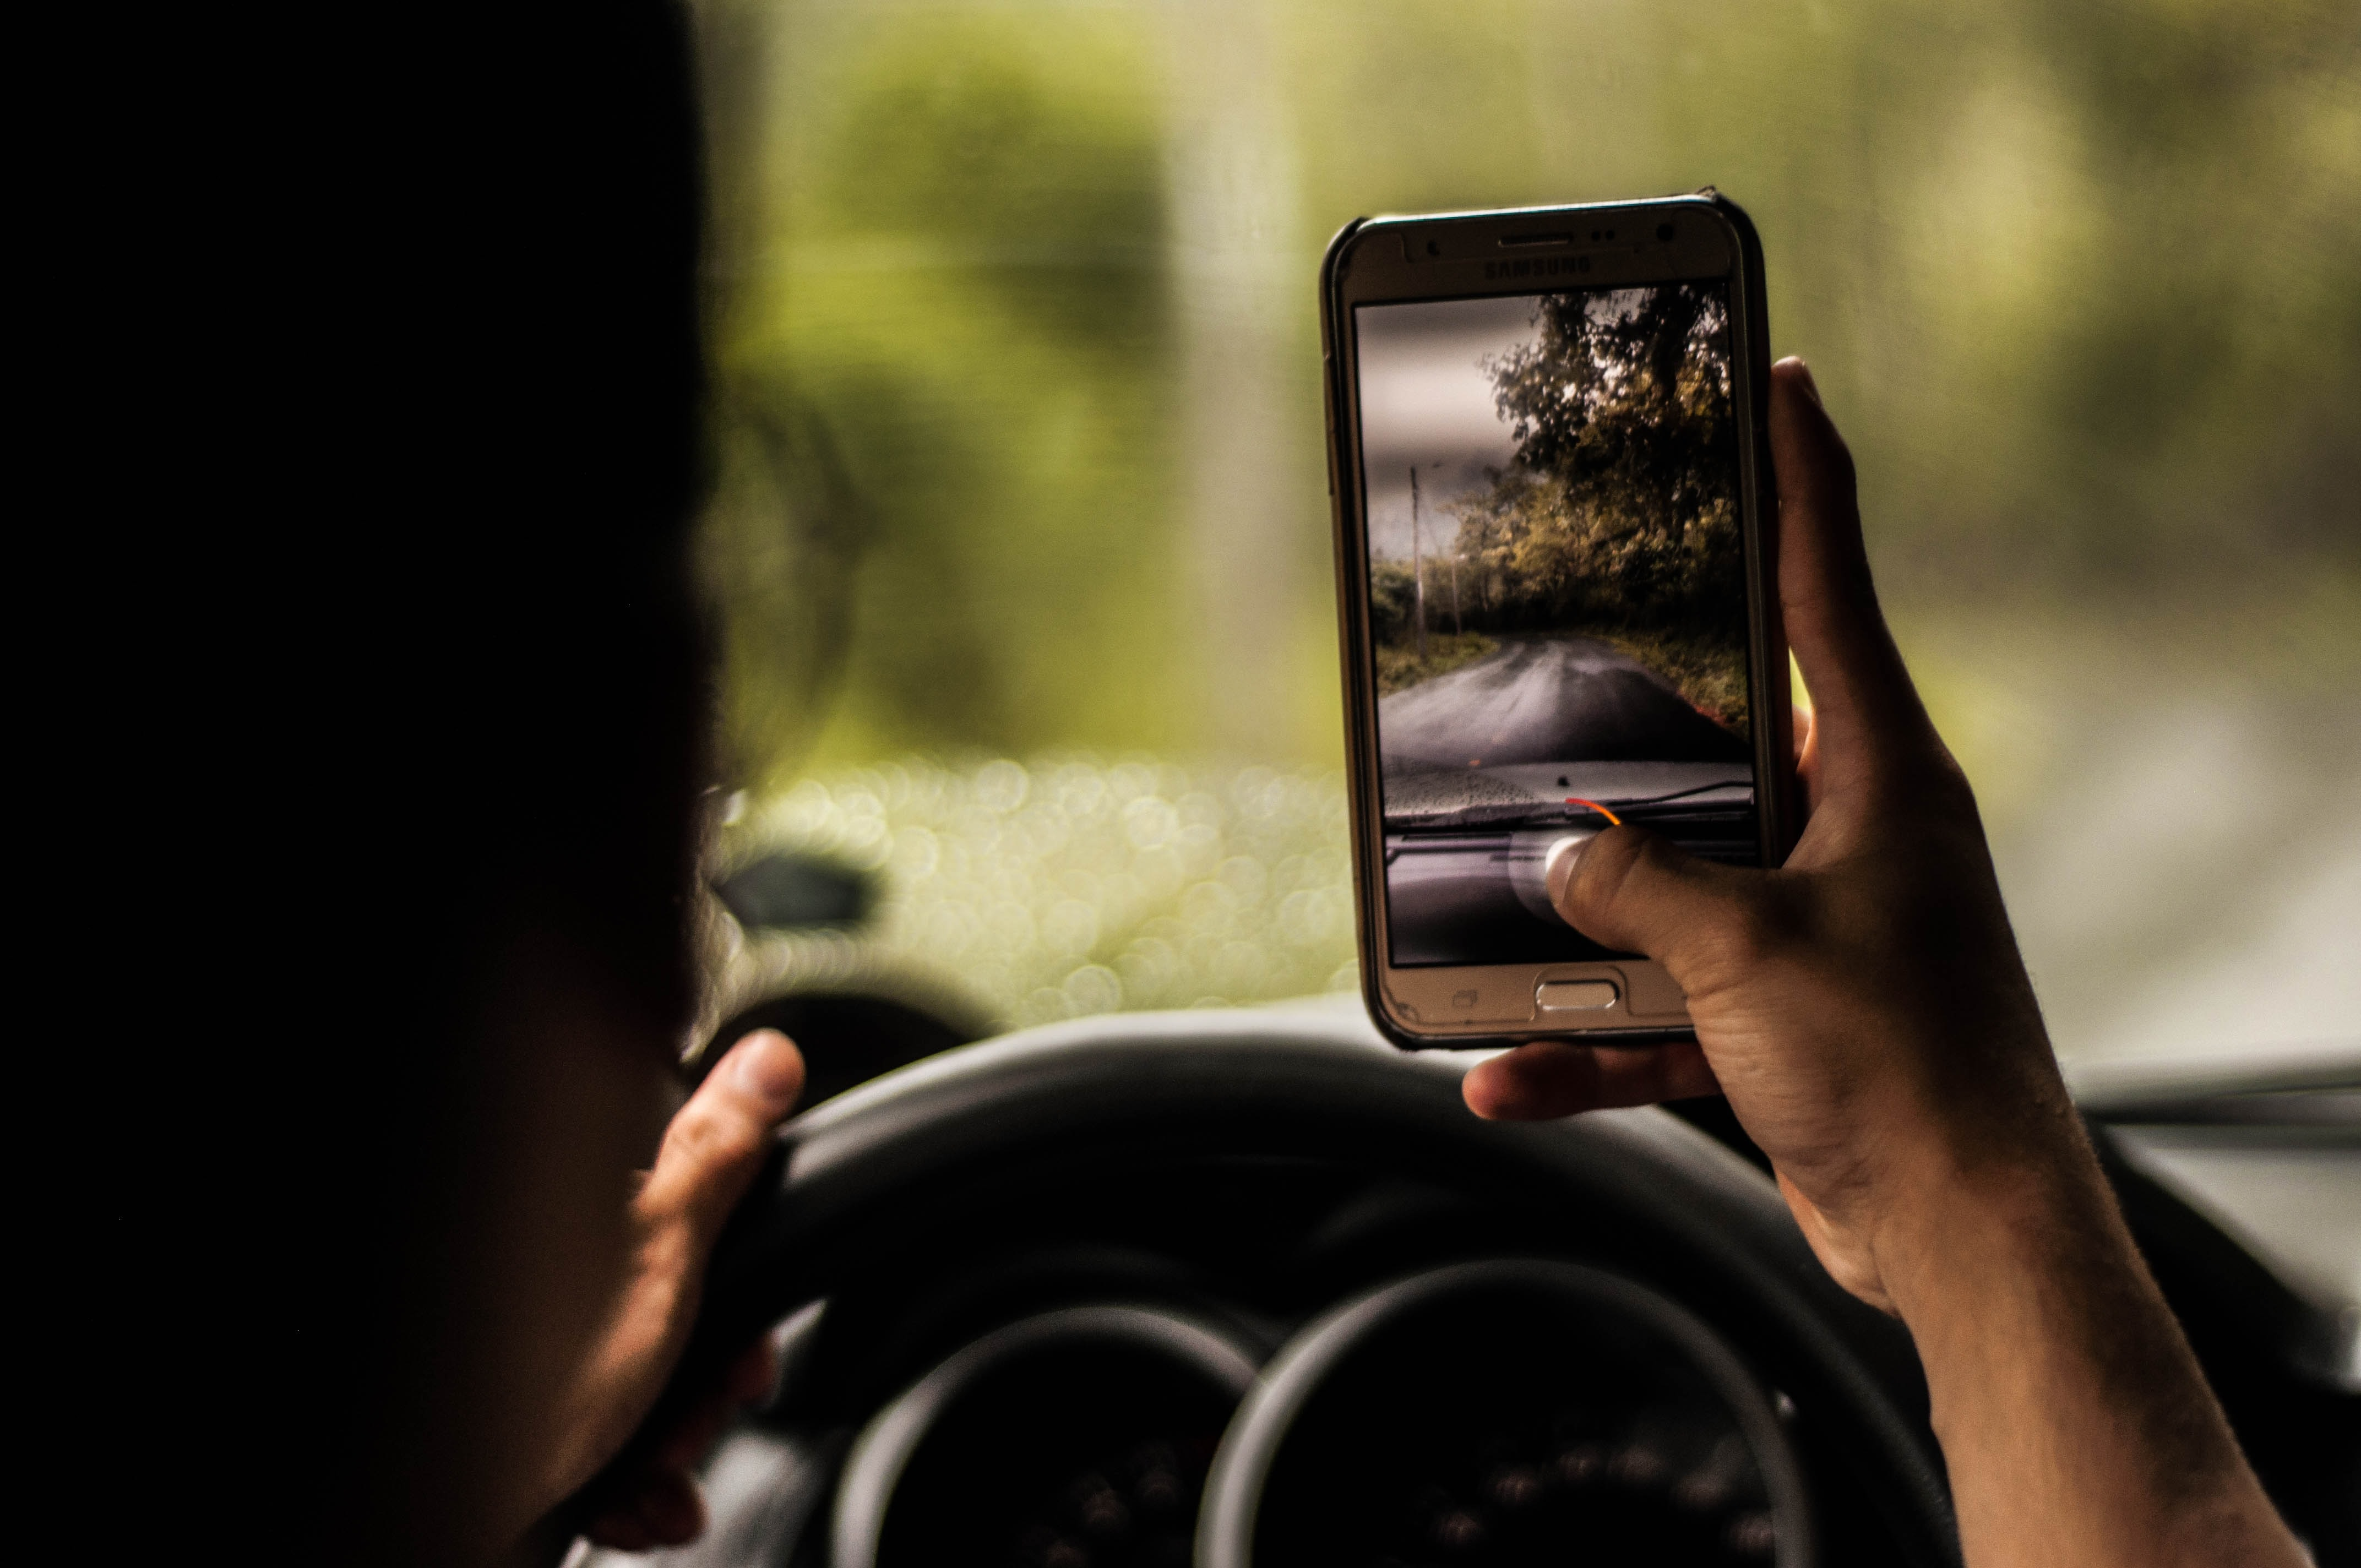 COVID-19 source of distracted driving